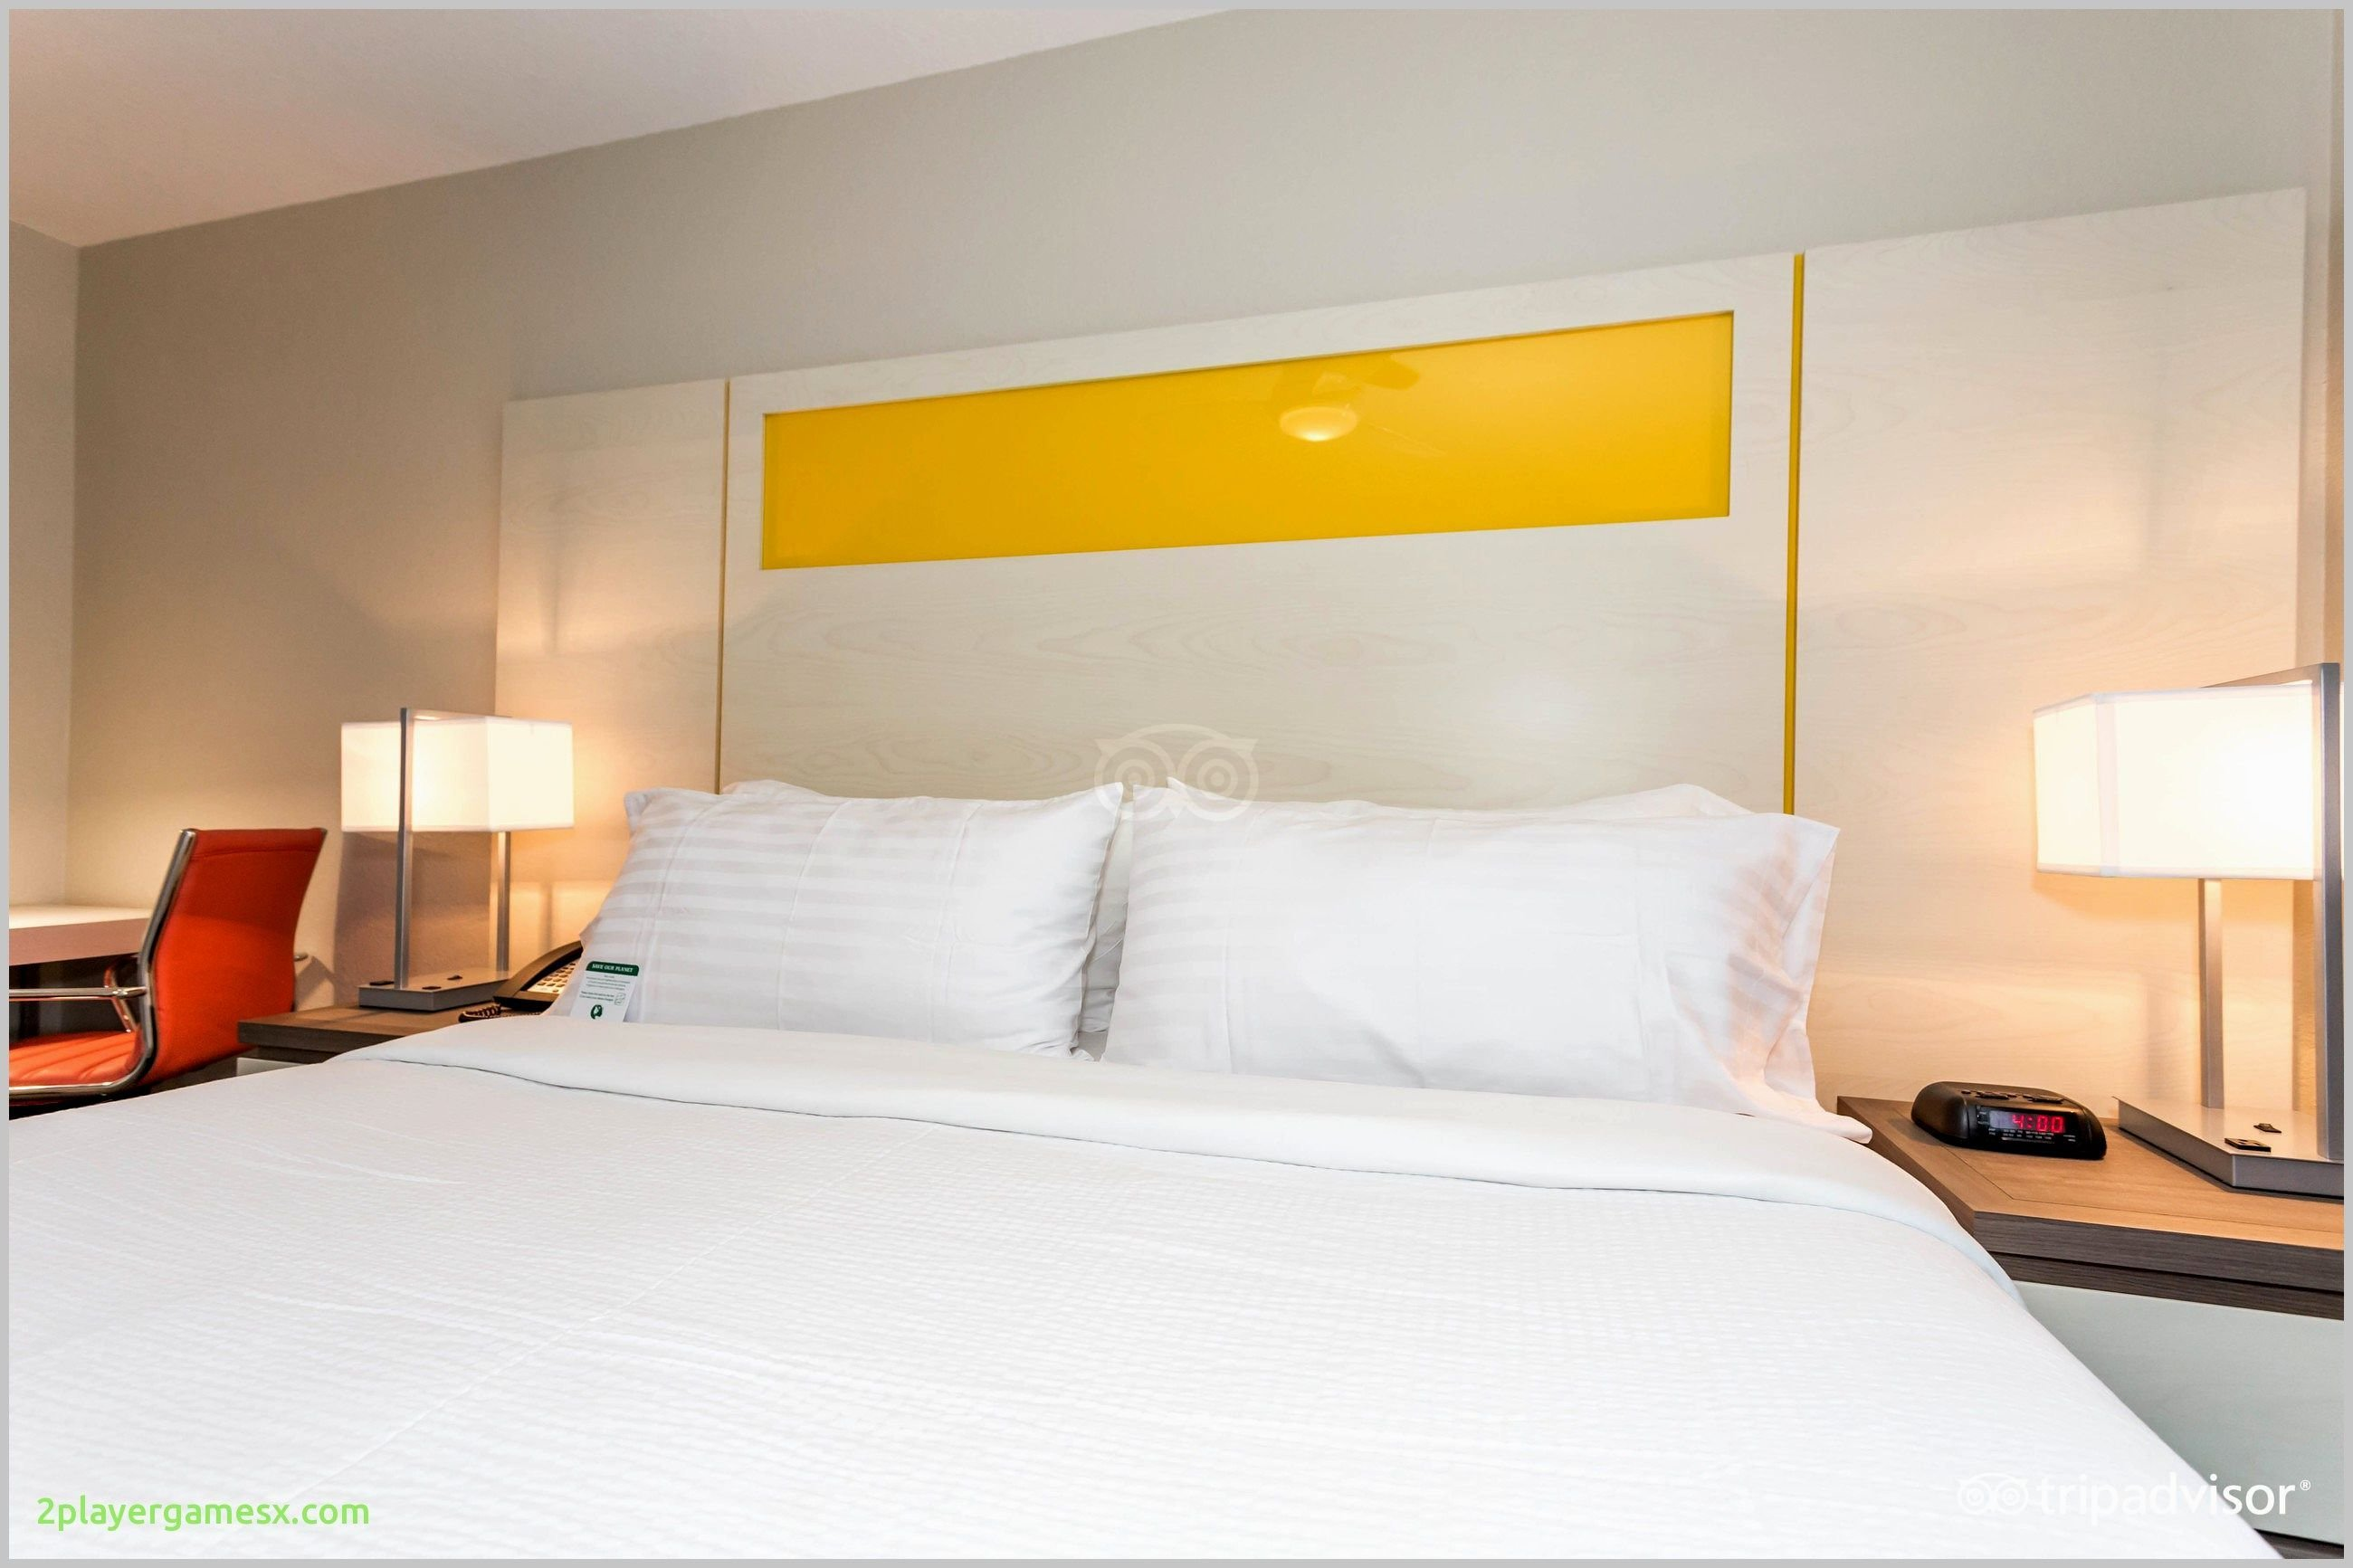 Best Incredible 3 Bedroom Suites In Orlando Wallpaper Bedroom Decorating And Disign Colors Ideas With Pictures